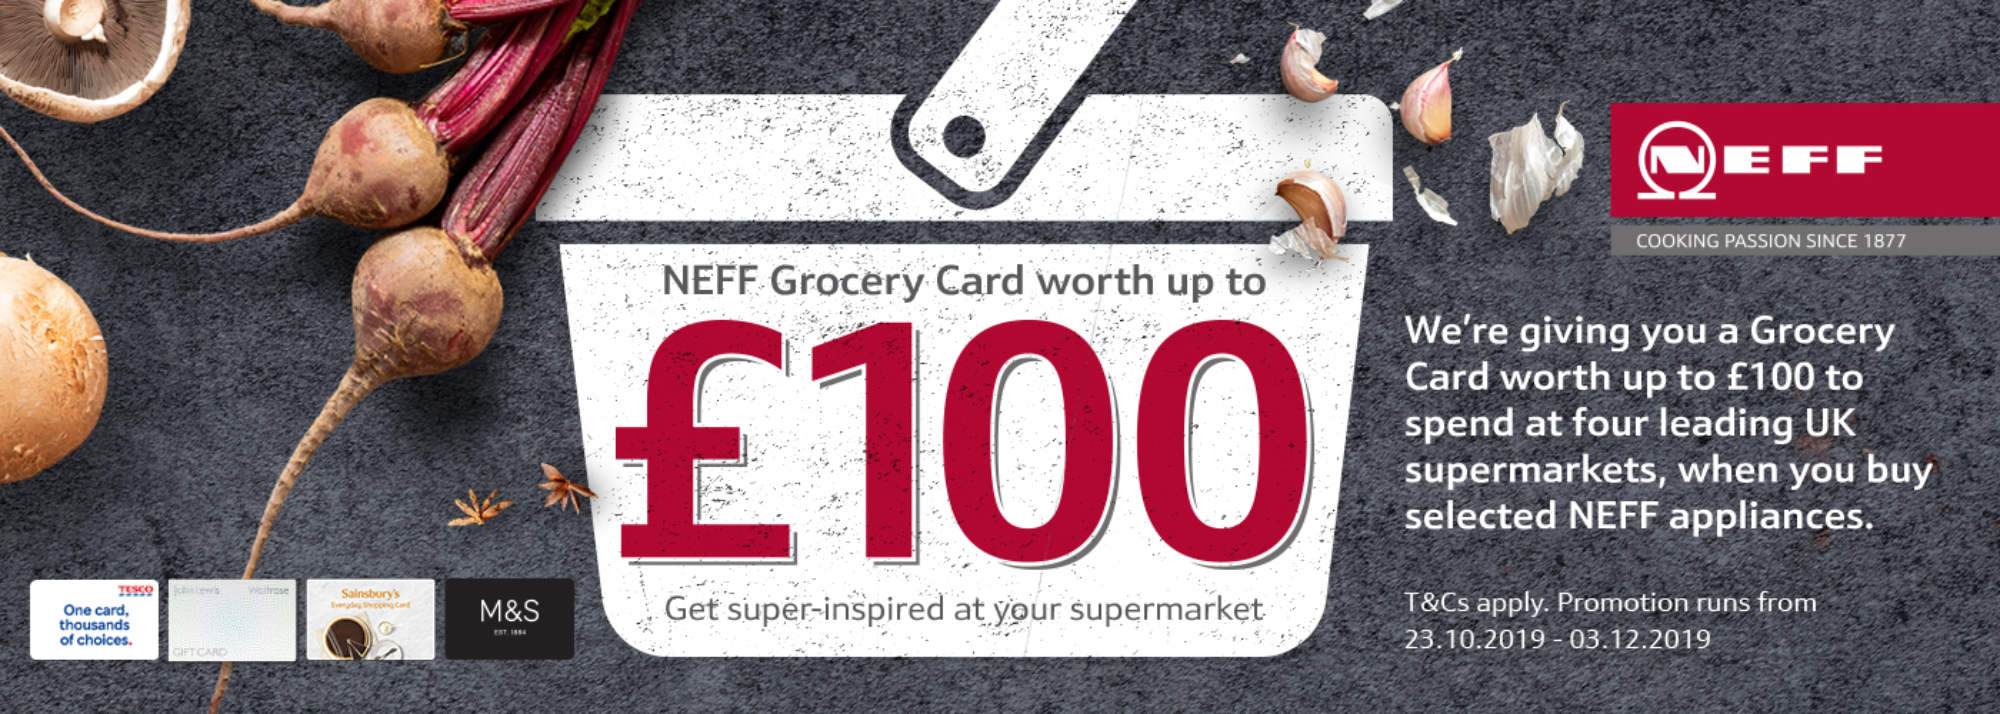 NEFF £100 Grocery Card Offer